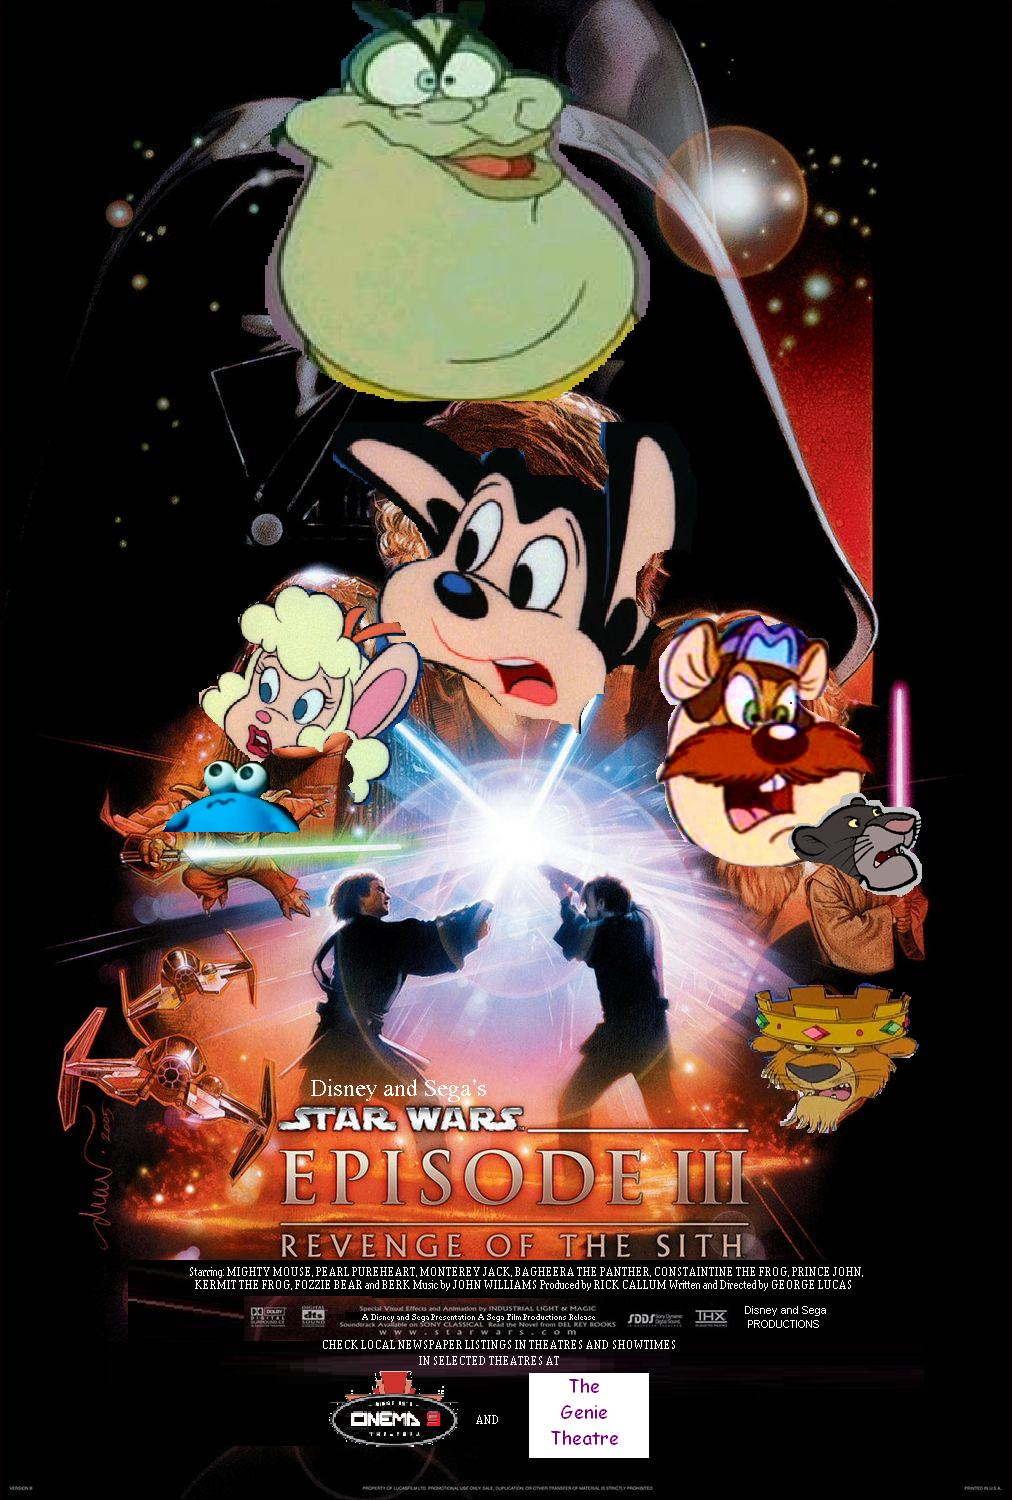 Star Wars Episode 3: Revenge of the Sith (Disney and Sega Style)